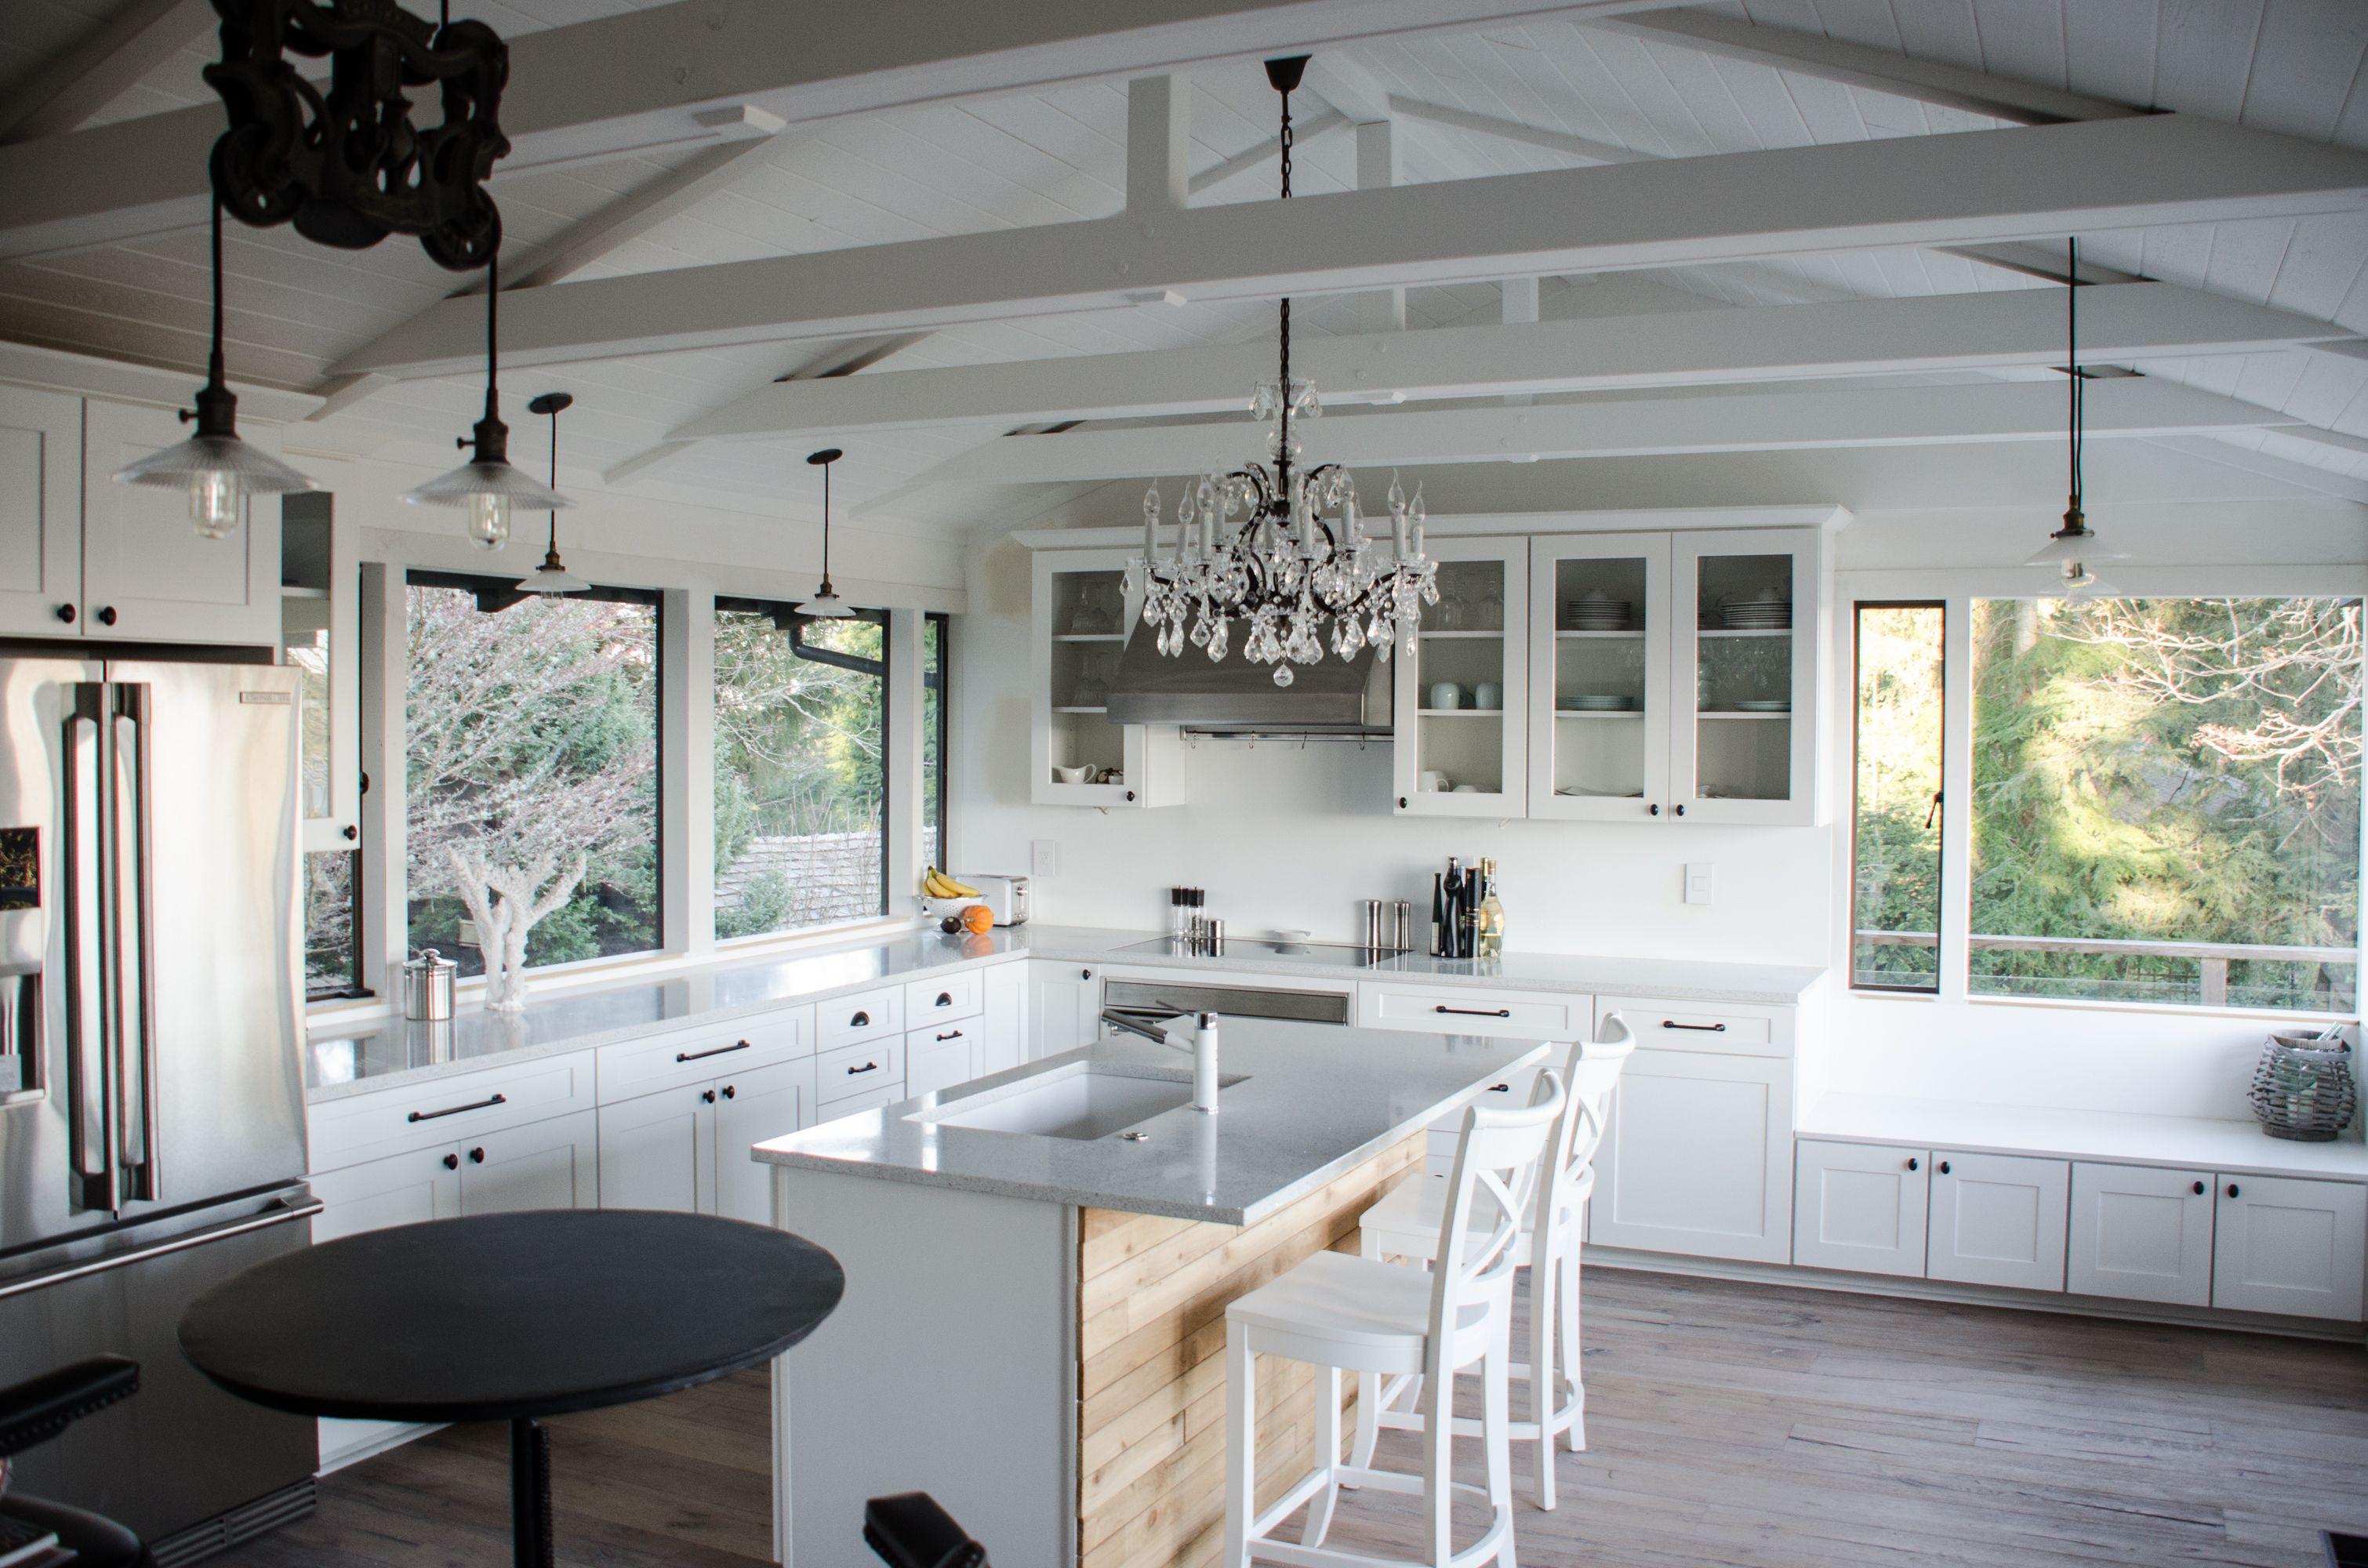 low vaulted ceiling ideas - Google Search | Vaulted ...